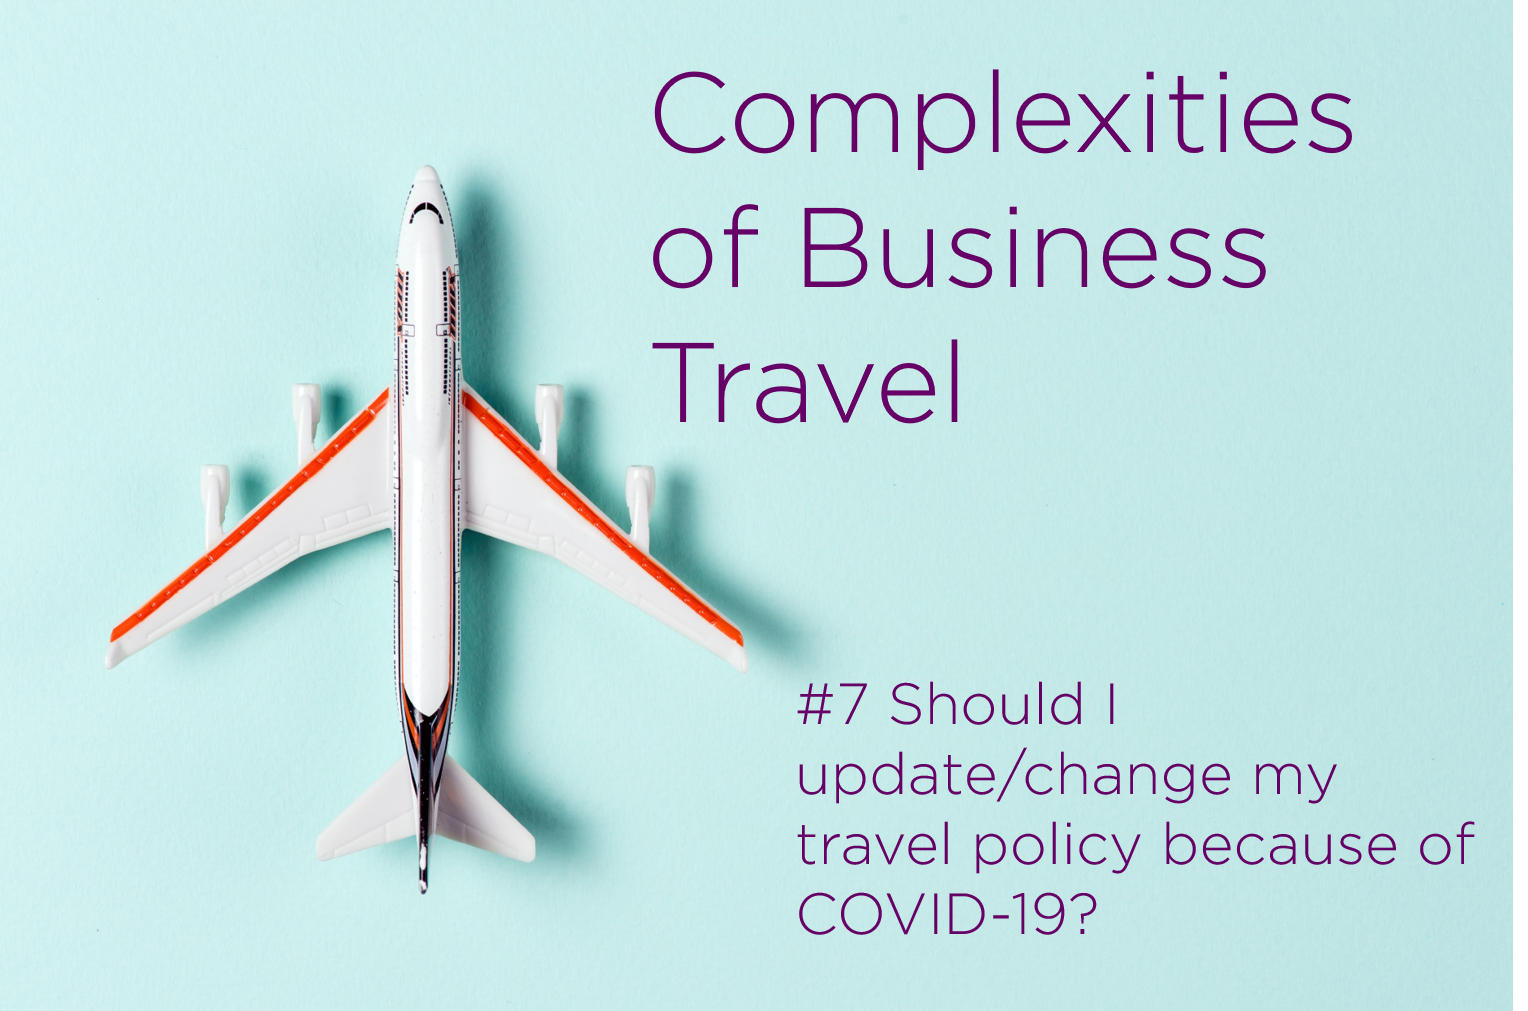 Complexities of Business Travel: #7 Should I update/change my travel policy because of COVID-19?